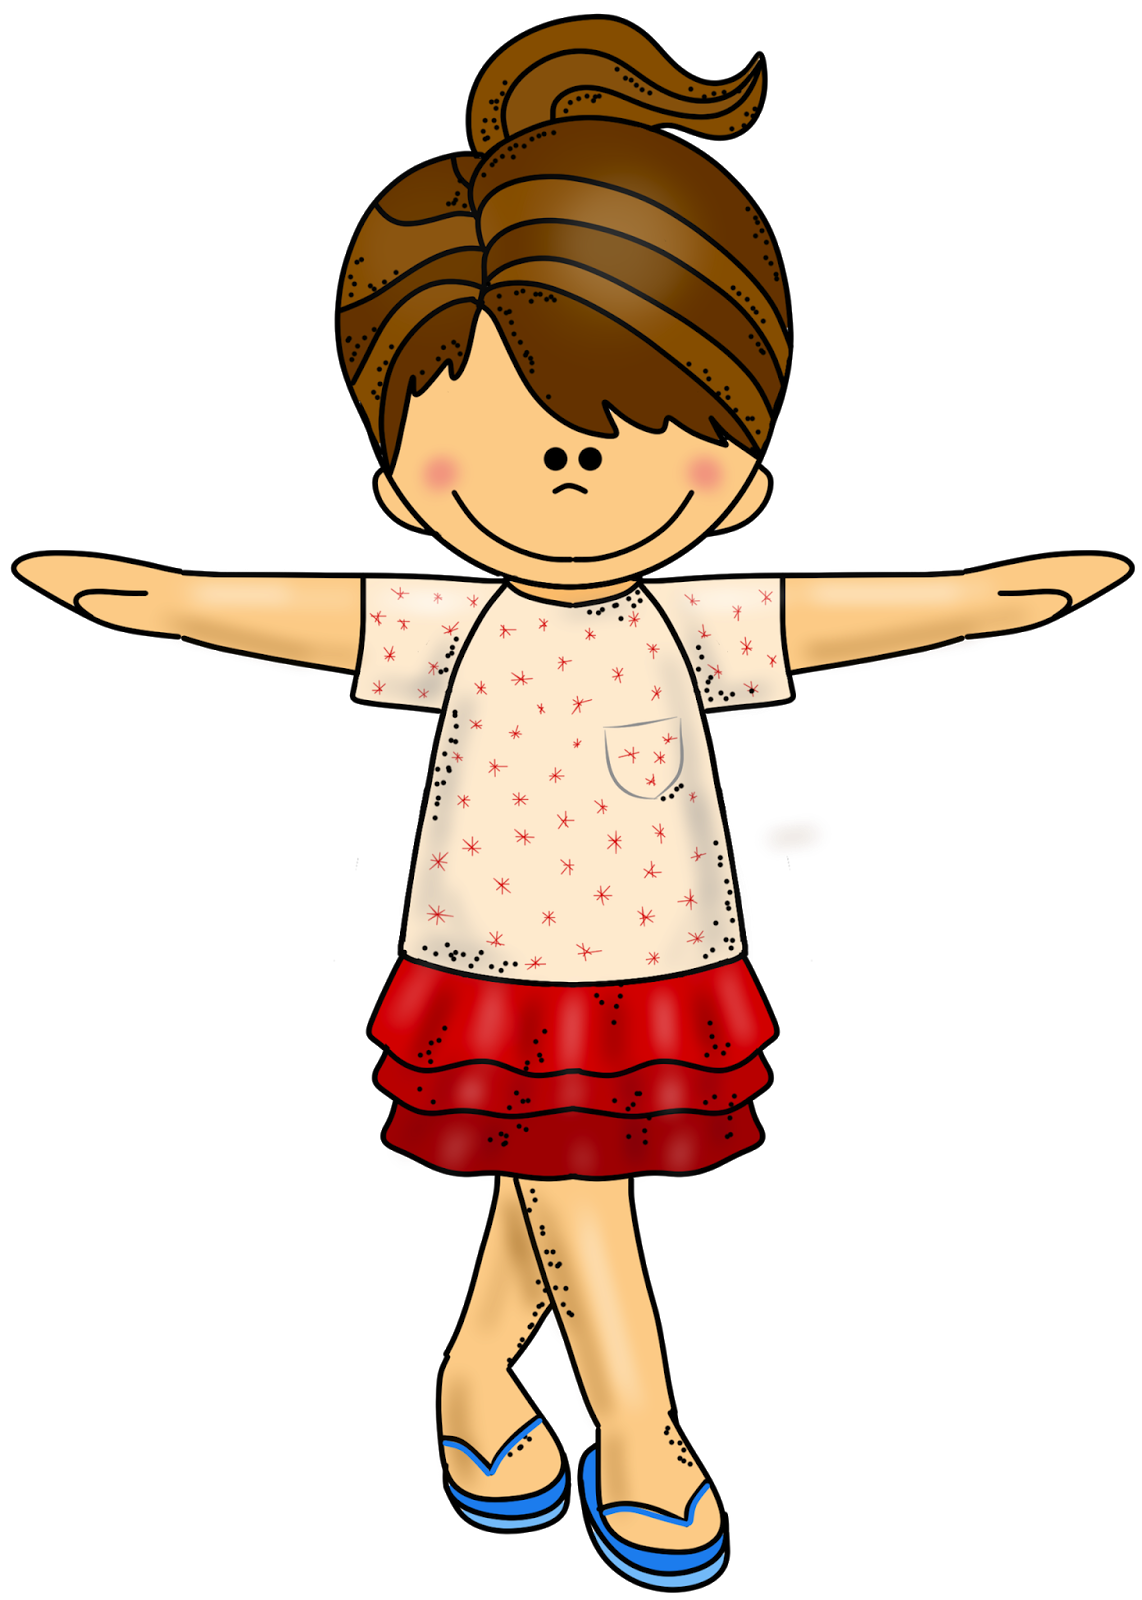 image royalty free library Awesome clipart happy person. She is .